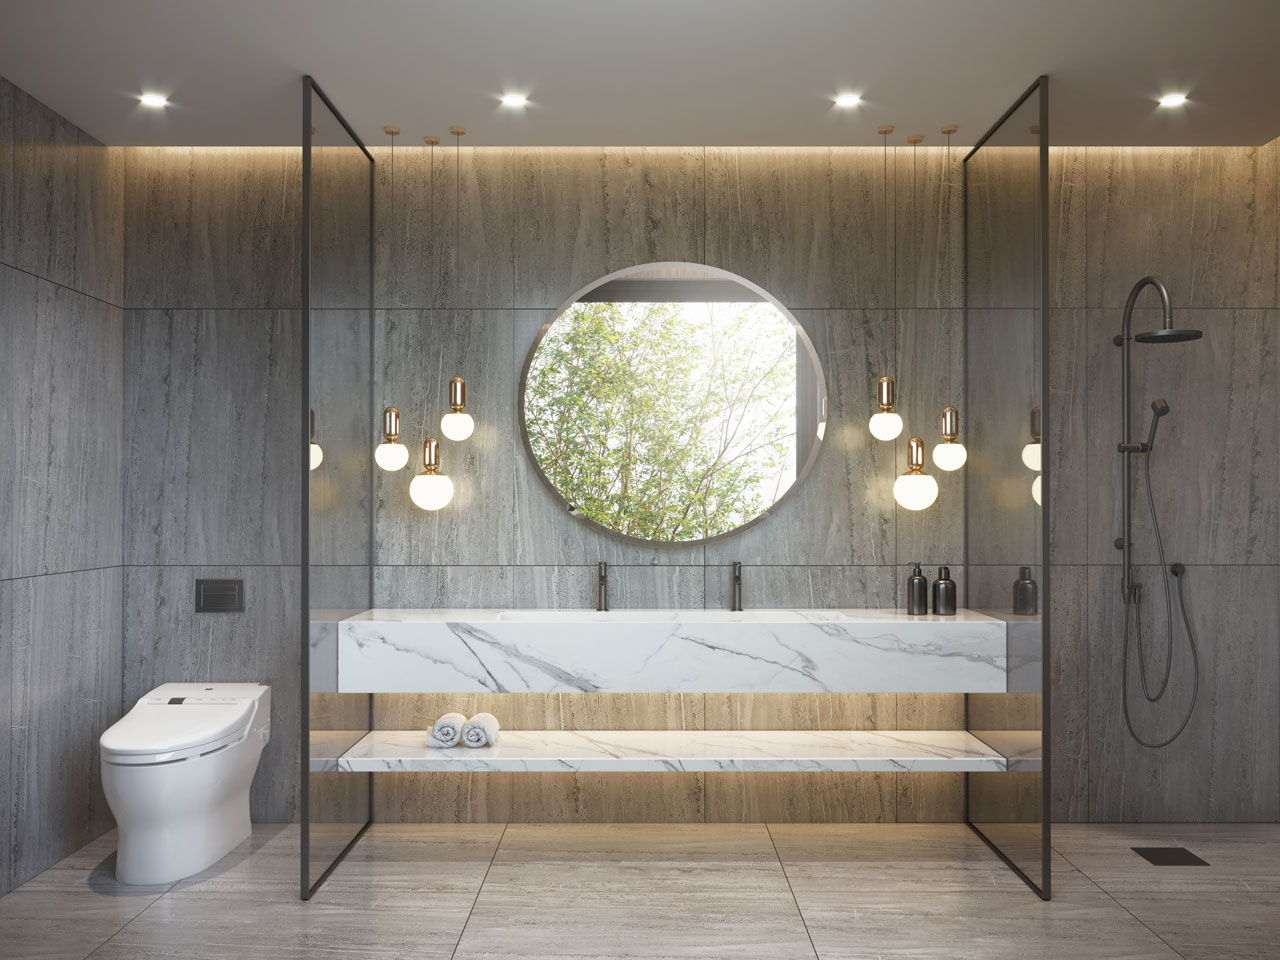 Beautiful simplistic bathroom design